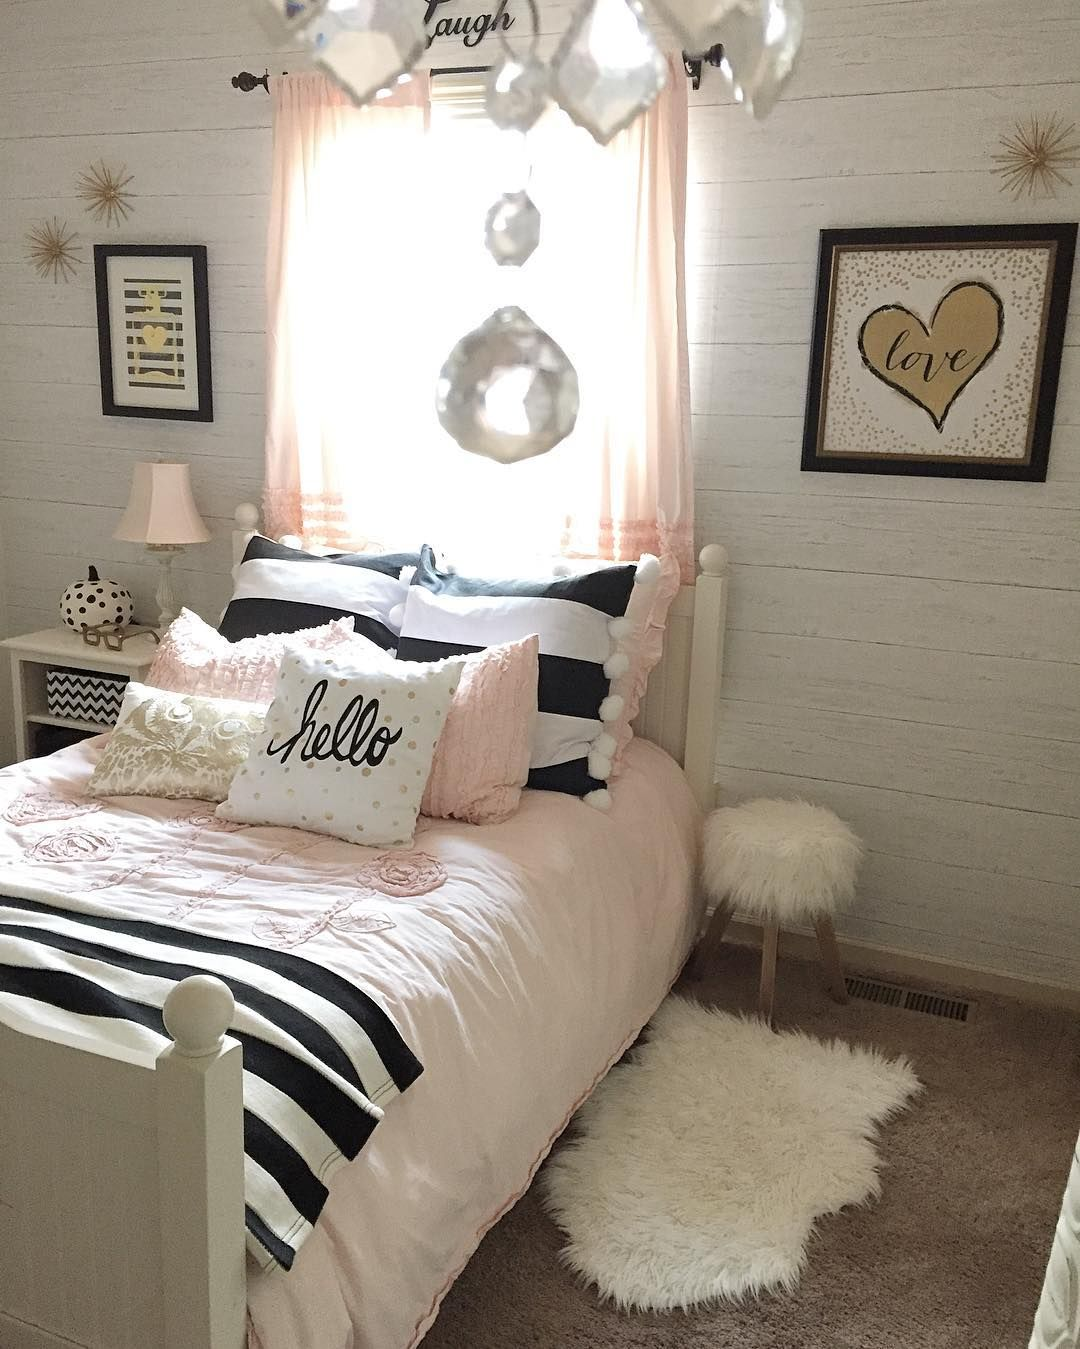 12 fun girl 39 s bedroom decor ideas cute room decorating - Cute teen room ideas ...